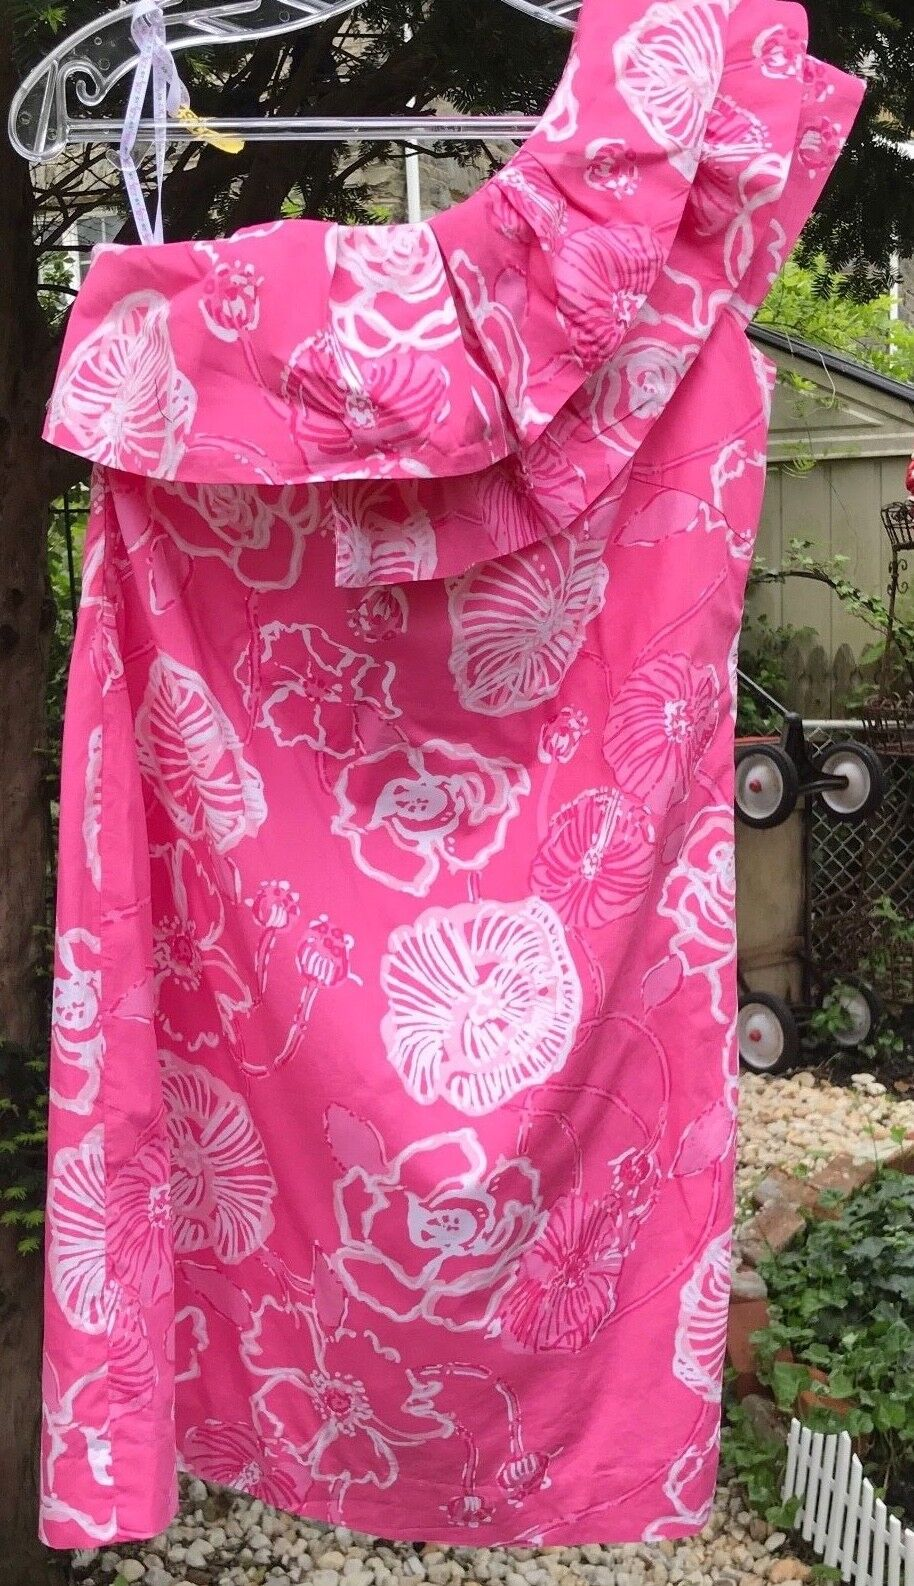 Lilly Pulitzer Dress Pink White Floral Print One Sleeve  Lined Cotton 2